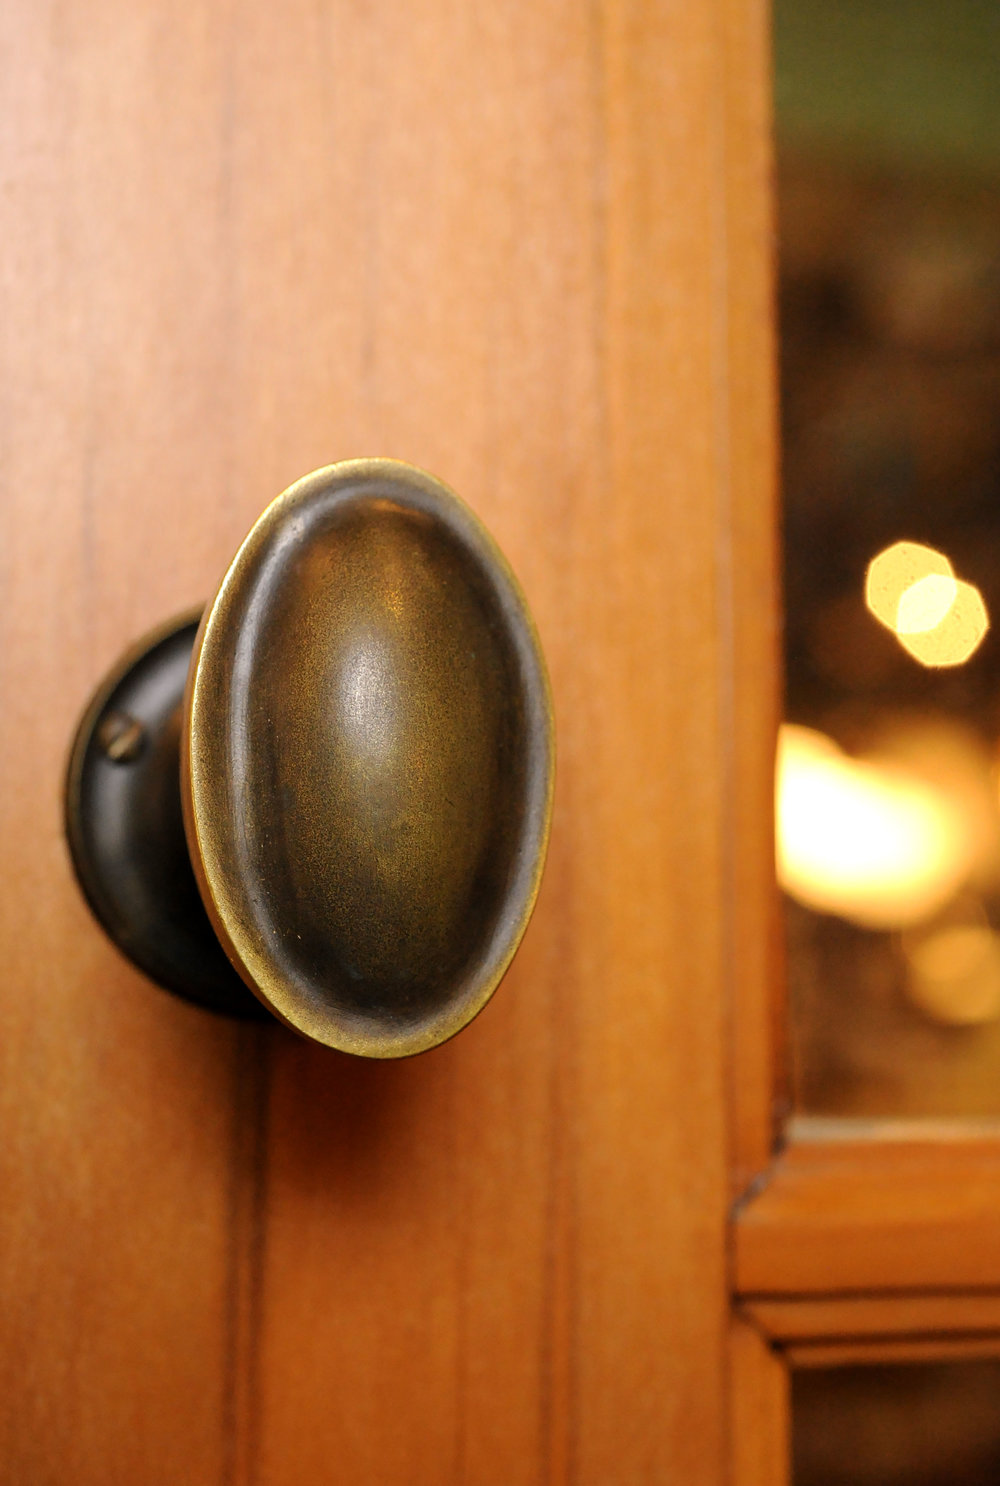 47090-mirrored-french-door-knob.jpg